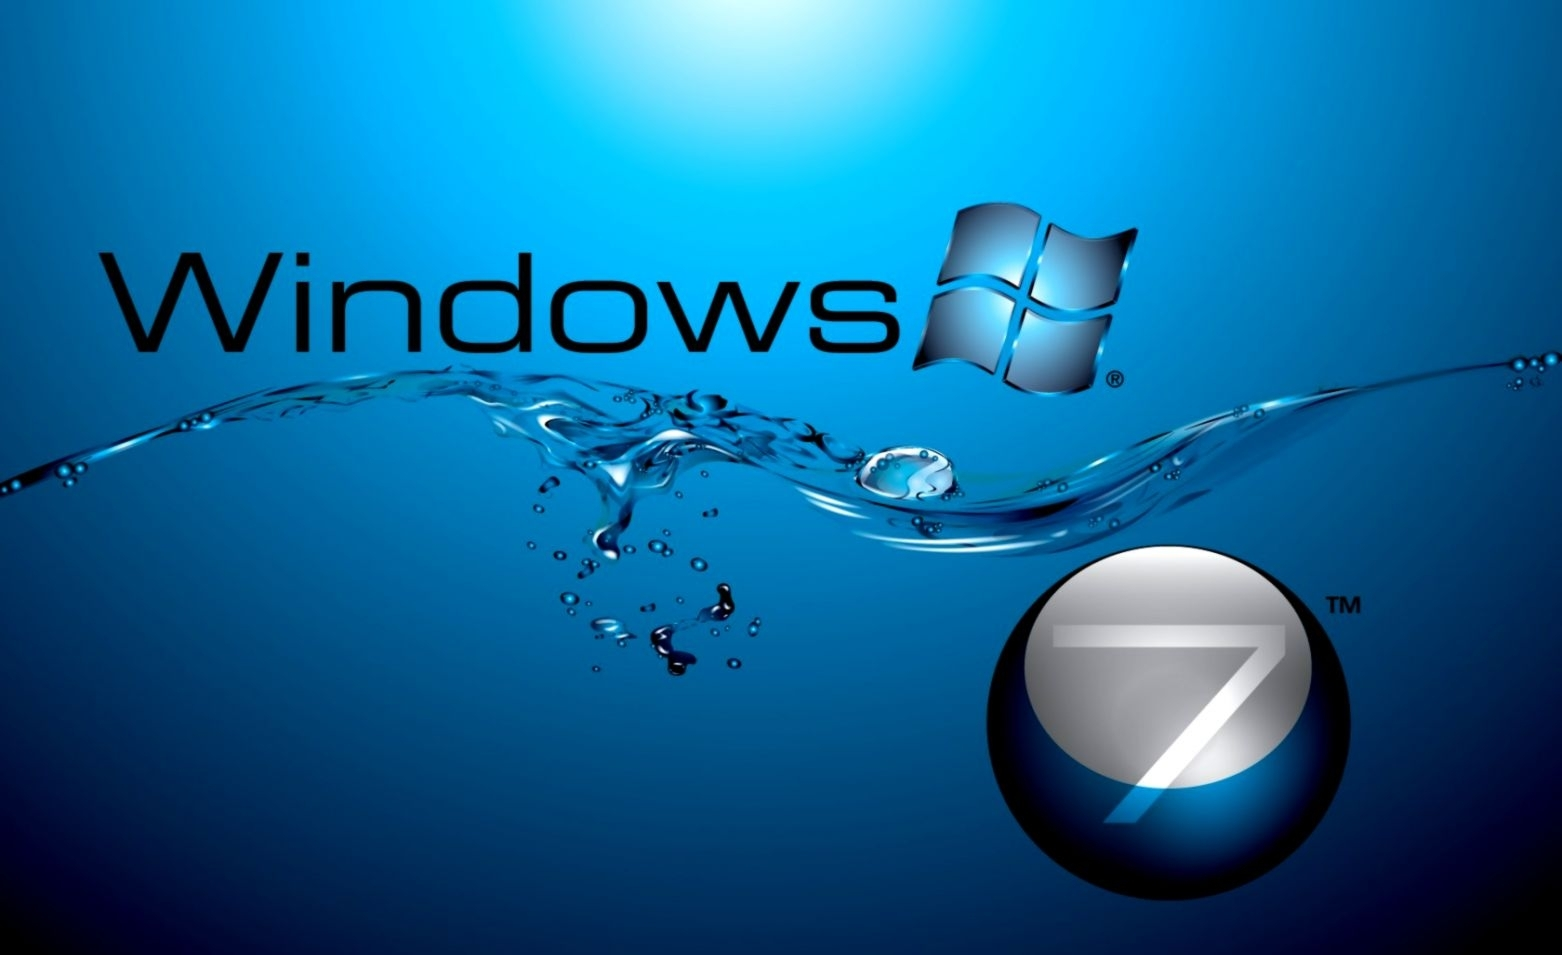 10 New High Definition Wallpapers Windows 7 Full Hd 1920 1080 For Pc